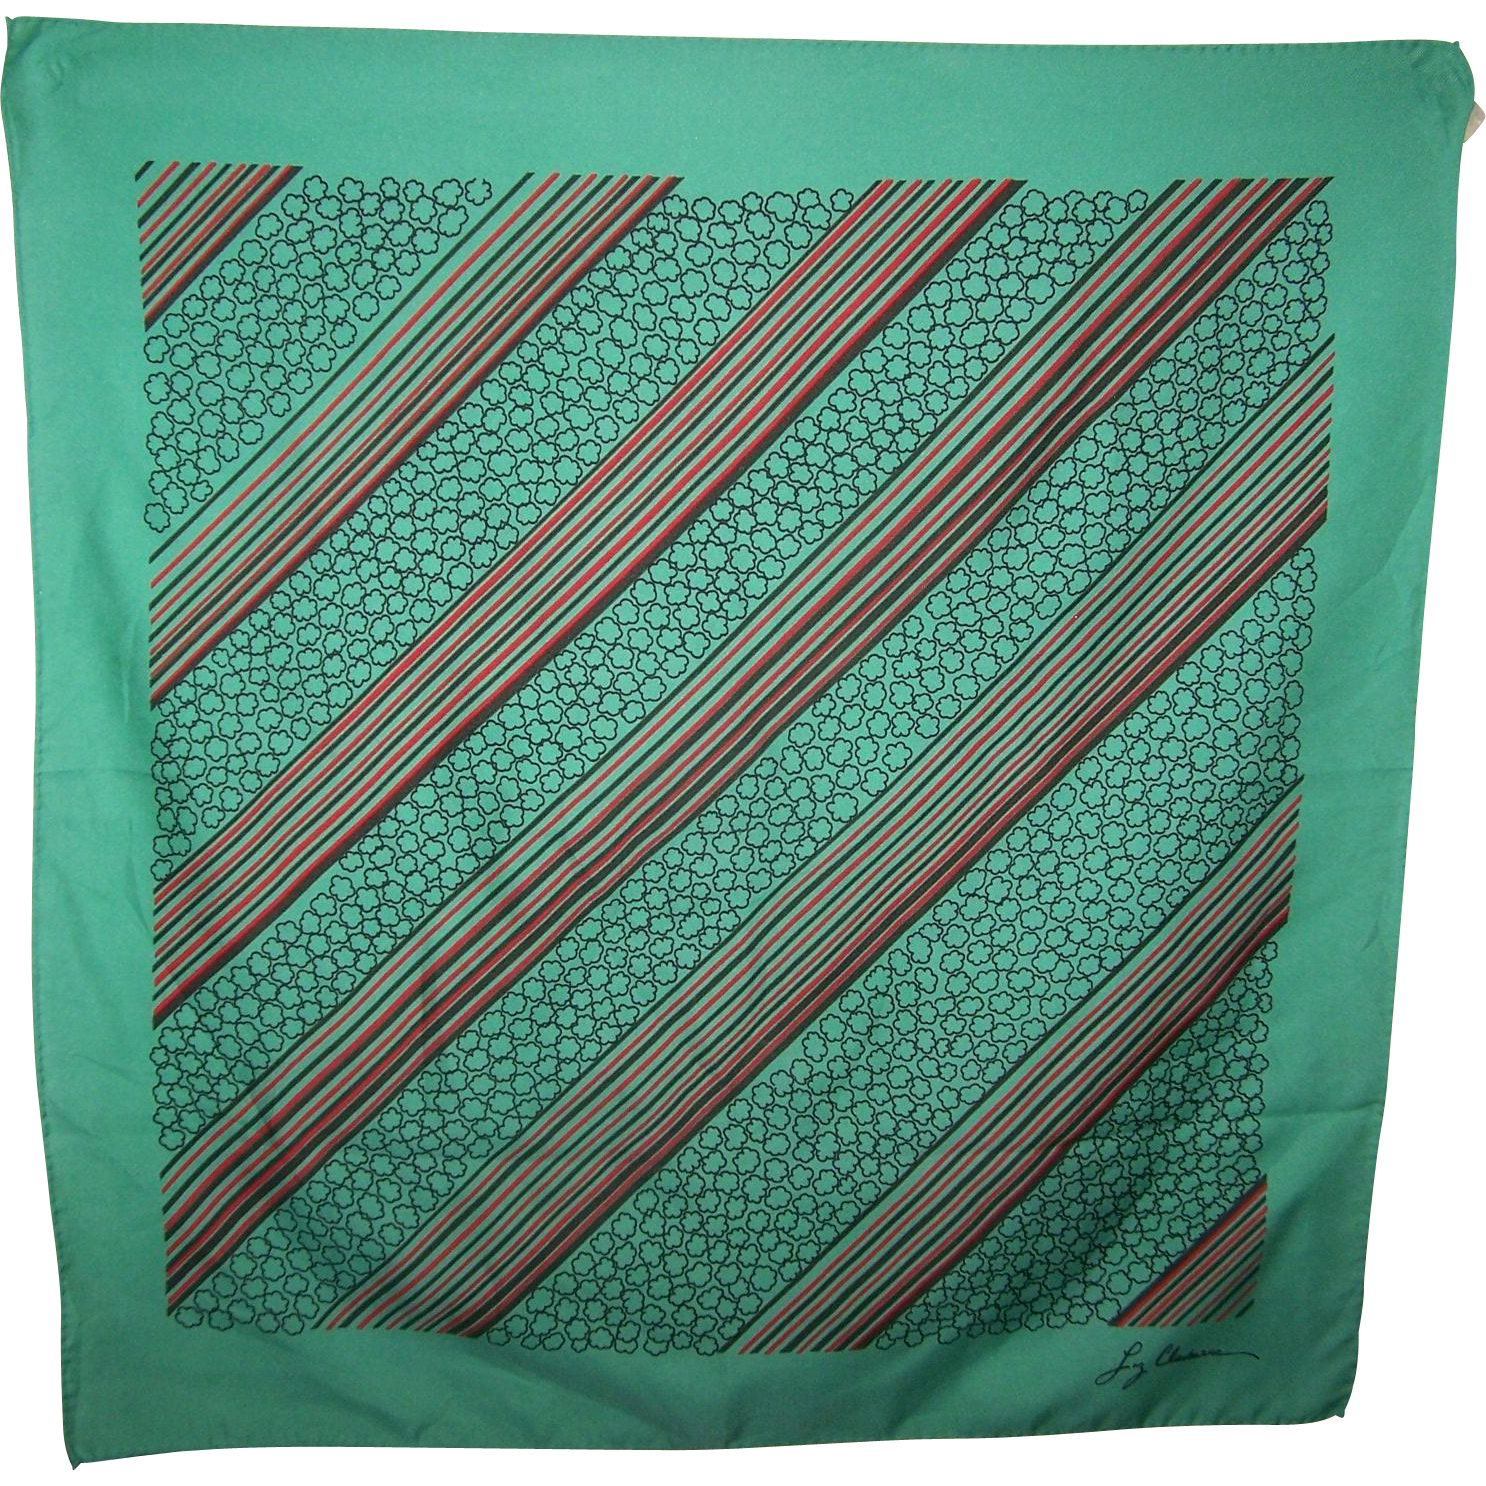 Early Cursive Script Designer Signed Liz Claiborne Fashion Scarf Geometric Op Art